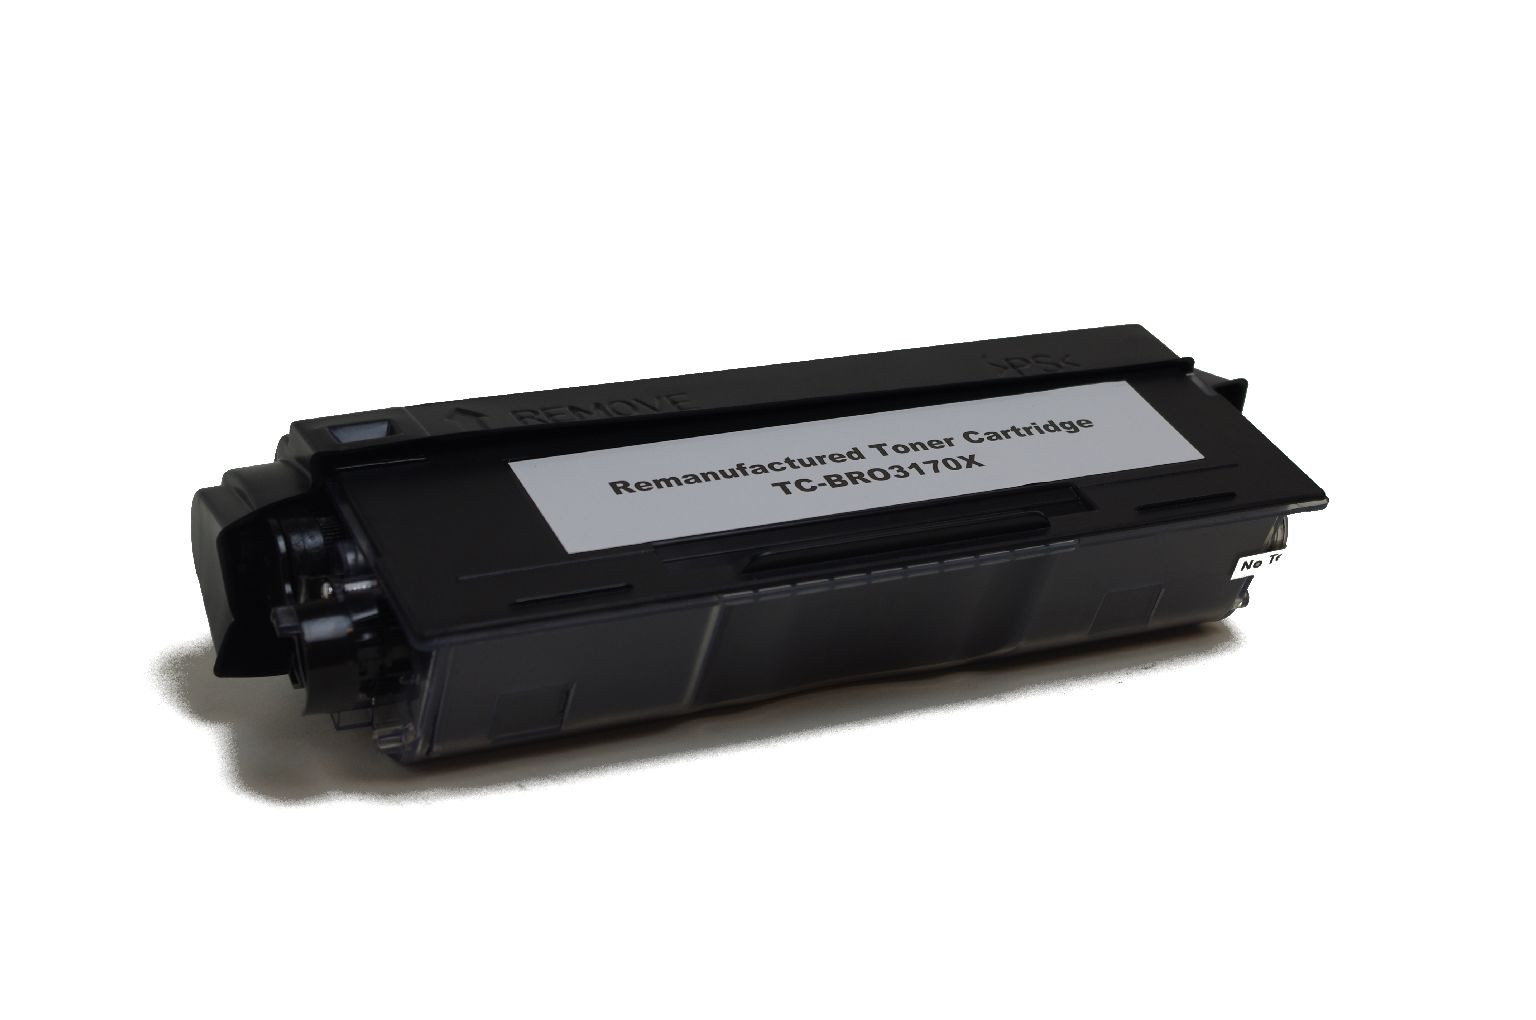 Cartouche de toner (alternatif) compatible à Brother DCP 8070/8085/8880/8890 HL 5340/5350/5370/5380 MFC 8370/8380/8880/8890   TN3280 / TN 3280